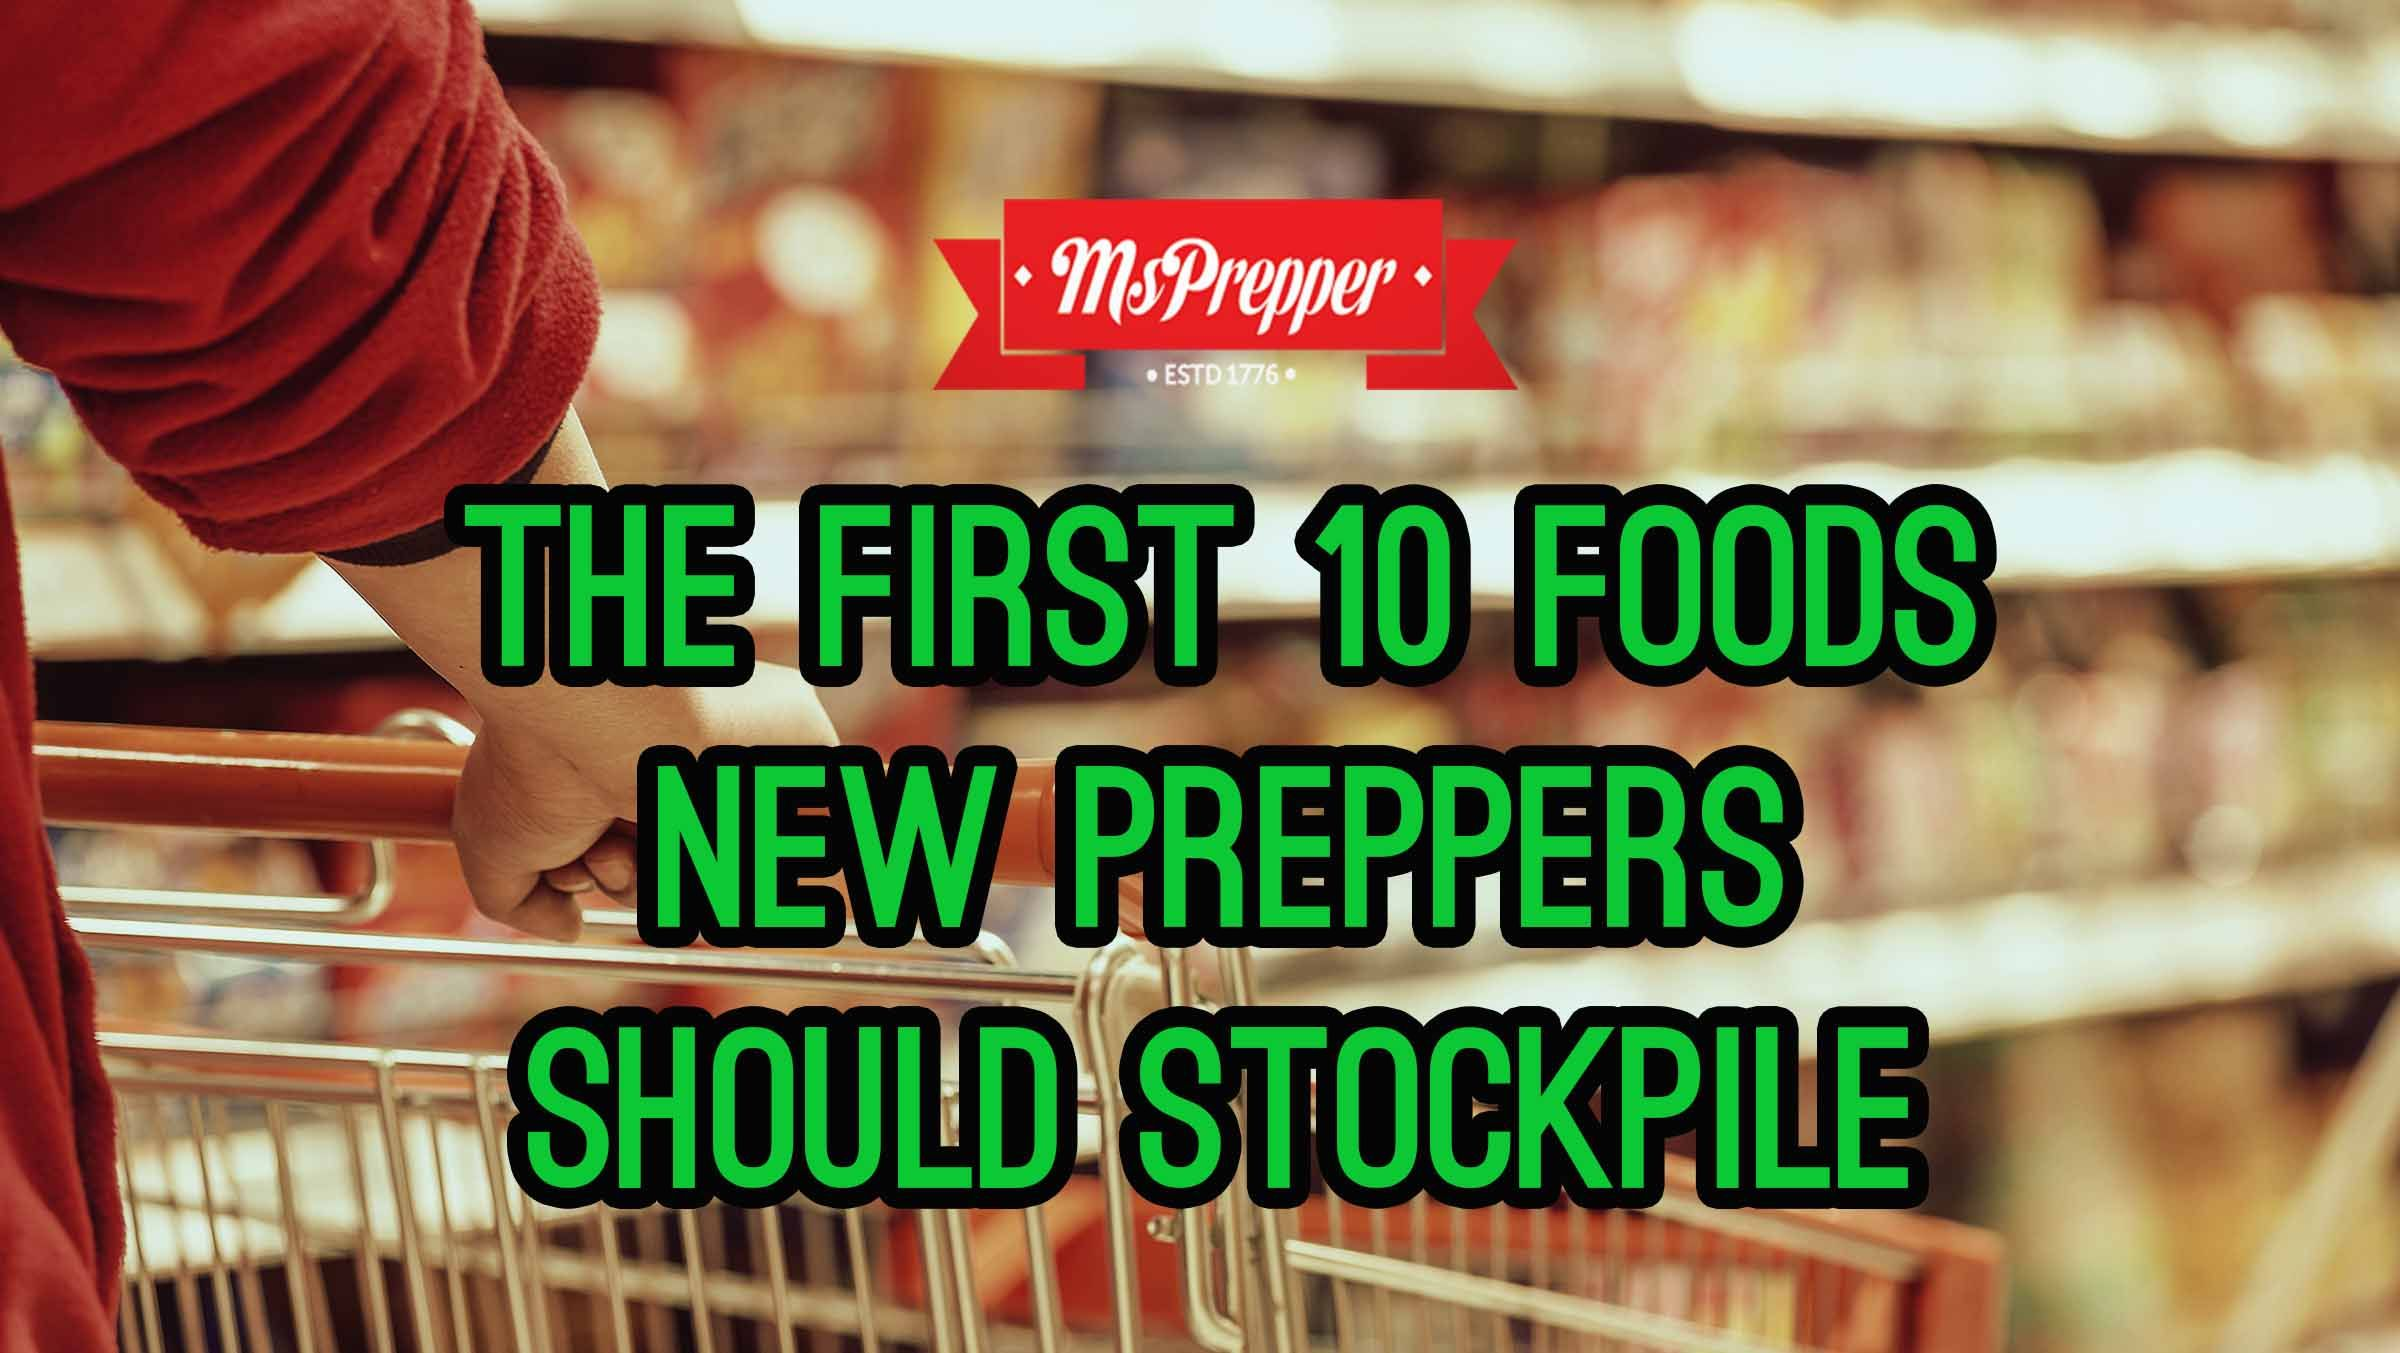 If you are just beginning your prepping journey, here are the 10 foods you should stock up on first!  #Prepping #Preppers #Homesteading #Survival #MsPrepper